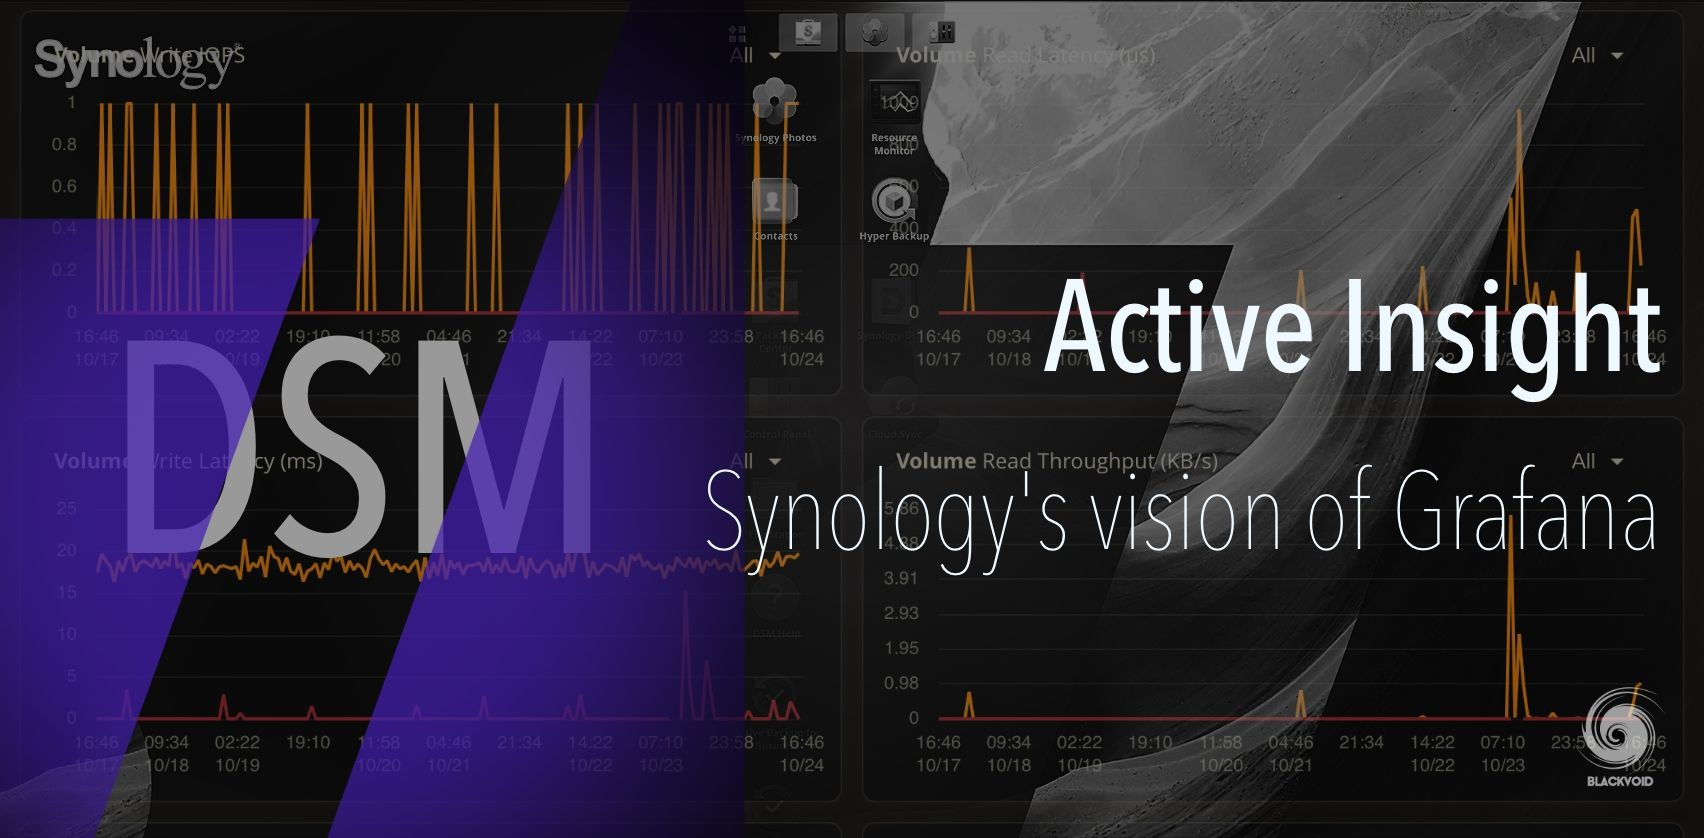 DSM 7 - Active Insight - all your NAS metrics in one place, and more